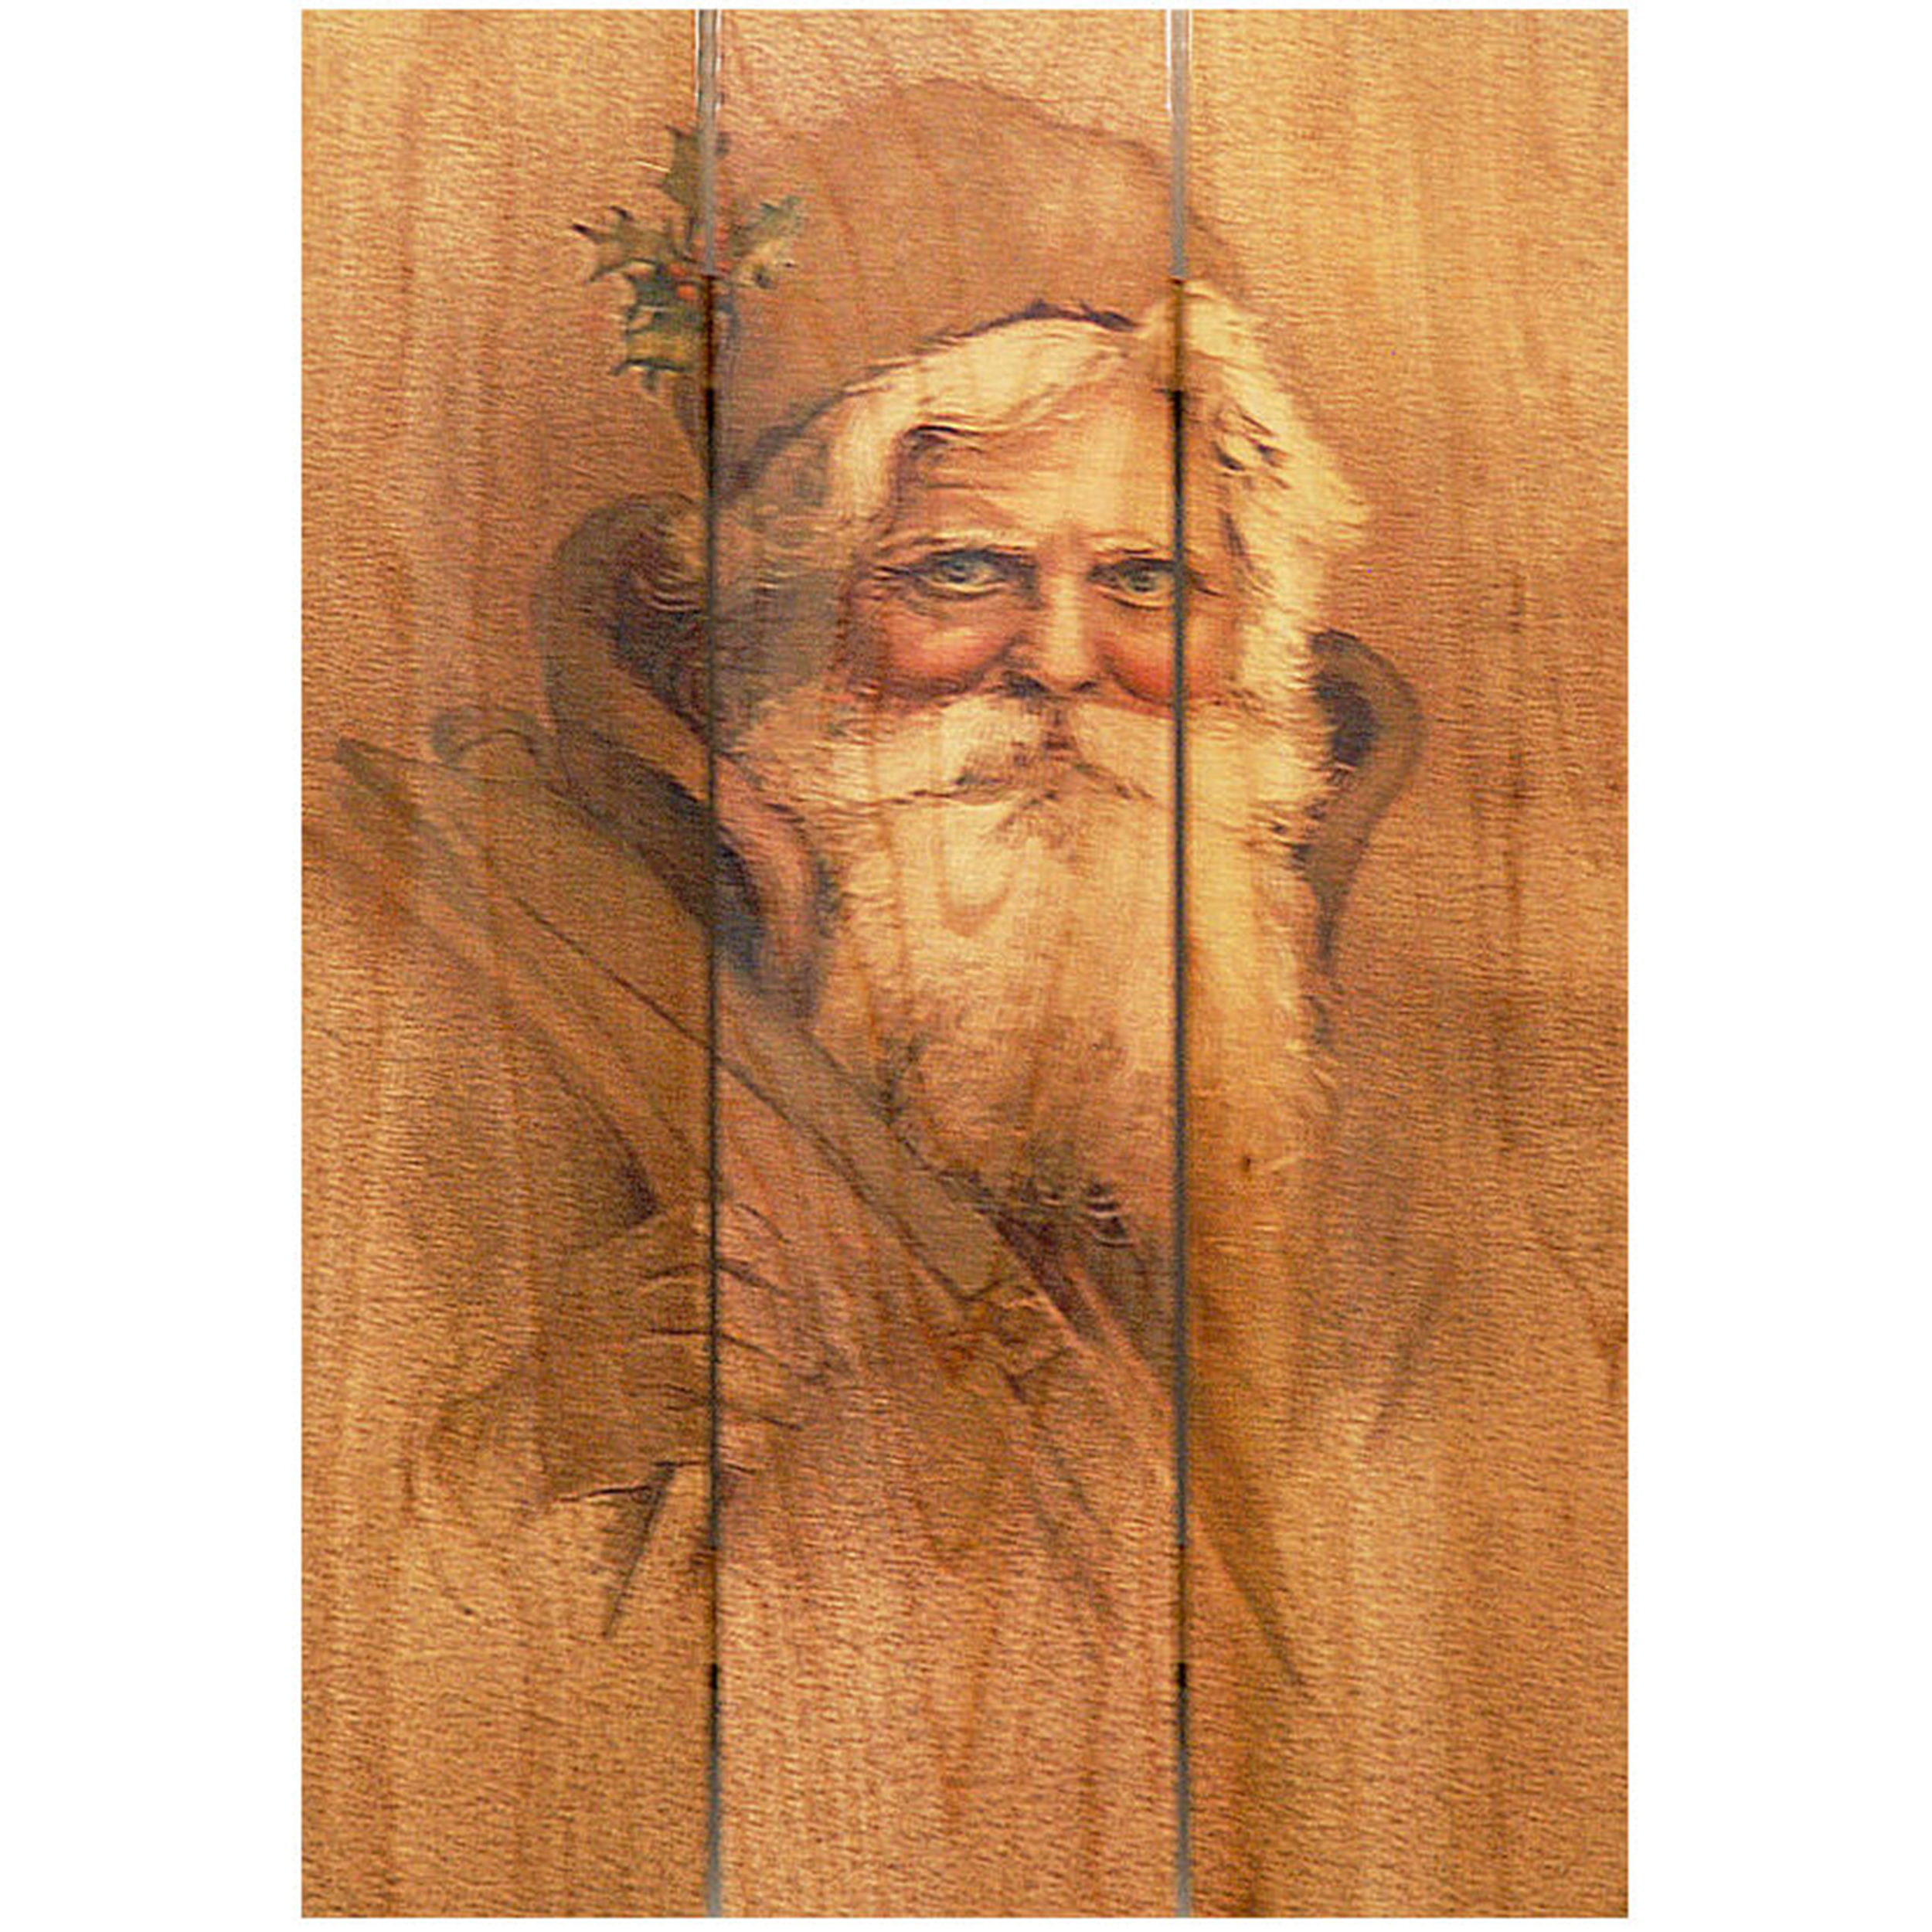 Daydream Gizaun Cedar Wall Art, Father Christmas, 16